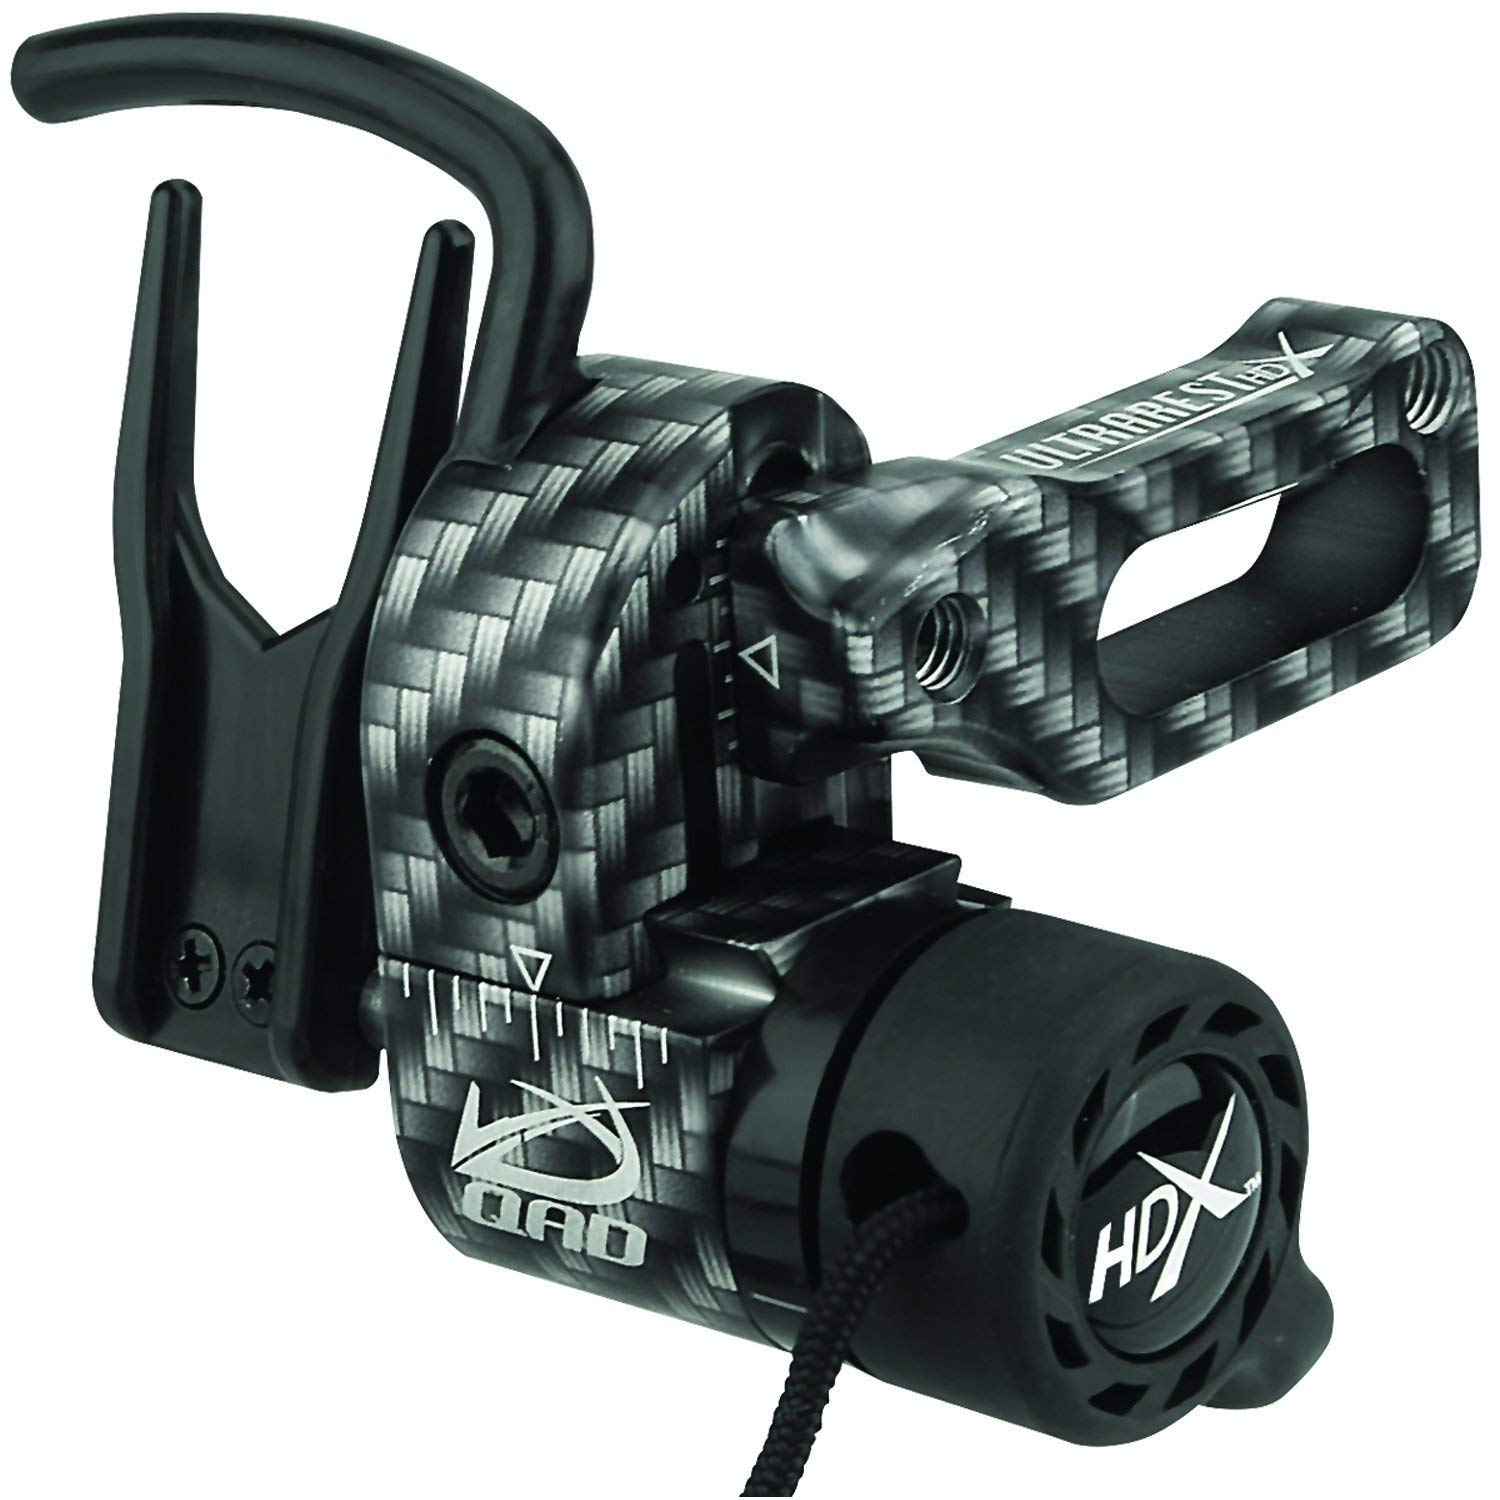 Best Archery Arrow Rest Buying Guide